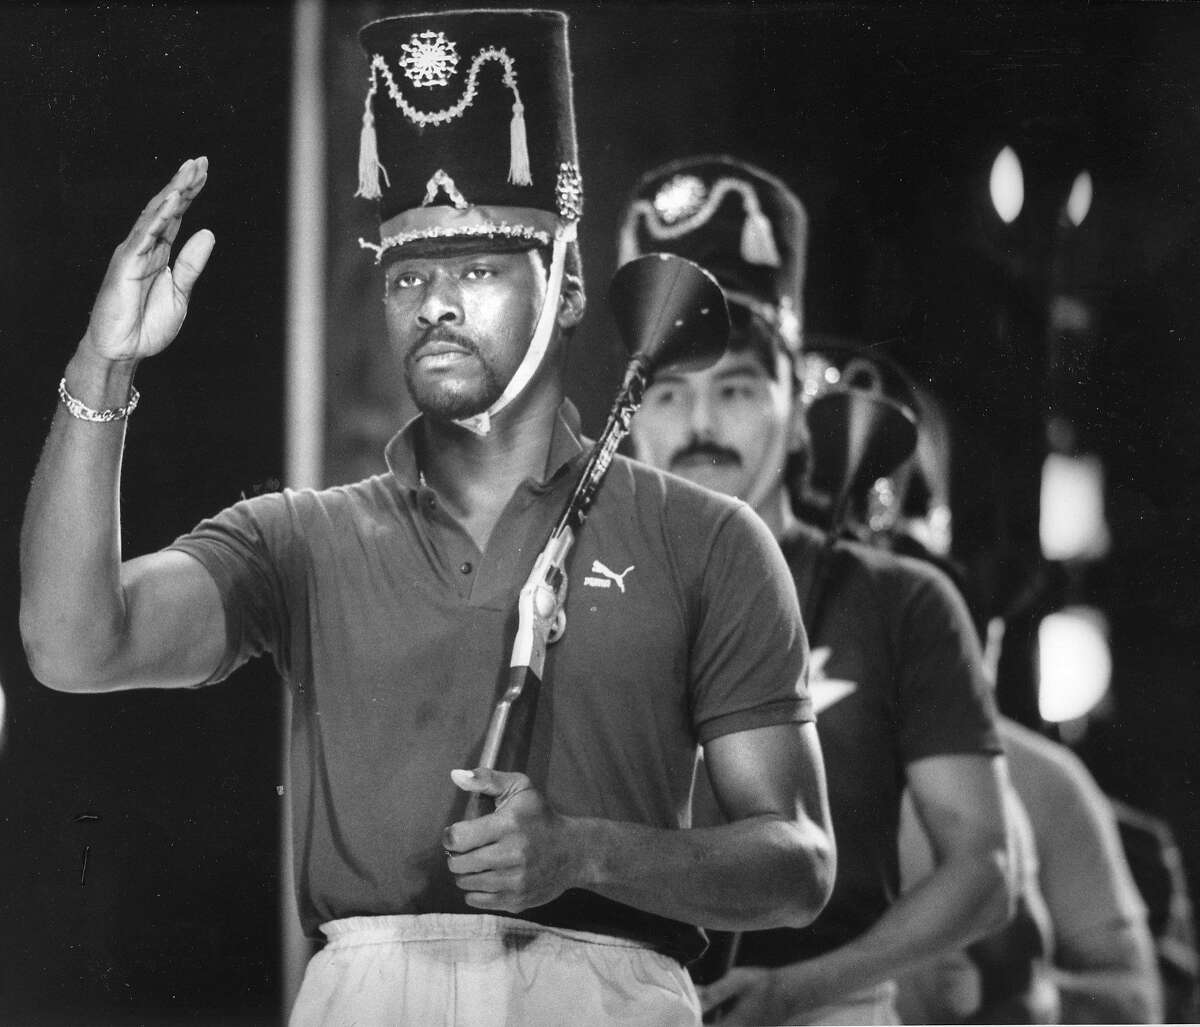 An All-Star night Oakland Athletics baseball players would perform in the Oakland Ballet's production of The Nutcracker, Here, they are rehearsing, December 16, 1987. Here Dave Stewart, followed by Rich Rodriguez and other Oakland A's are marching